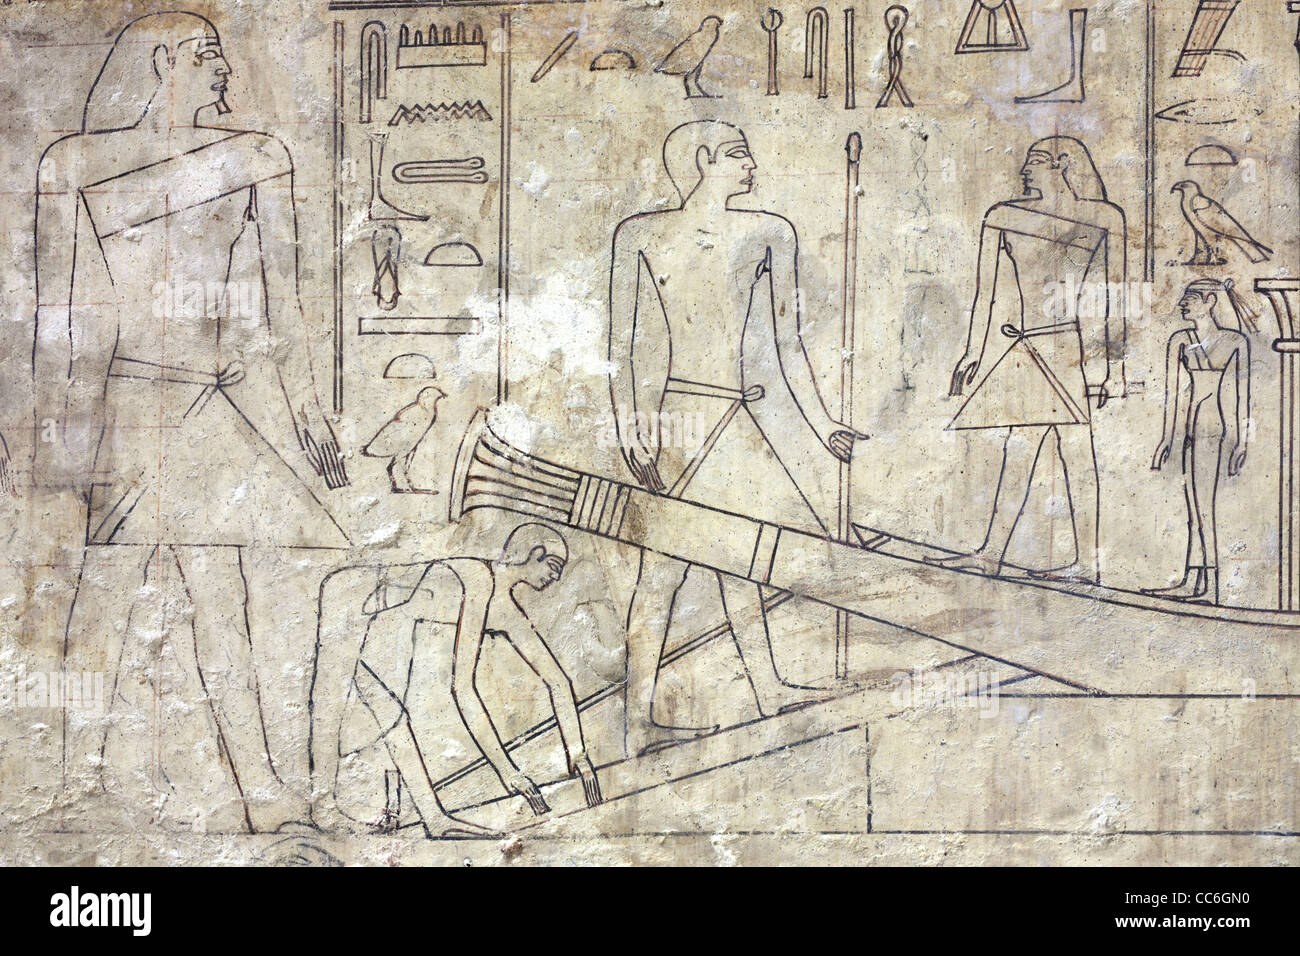 Line drawings in the  Old Kingdom tomb of Ni Ankh Pepy Kem at Meir , North West of Asyut in Middle Egypt - Stock Image